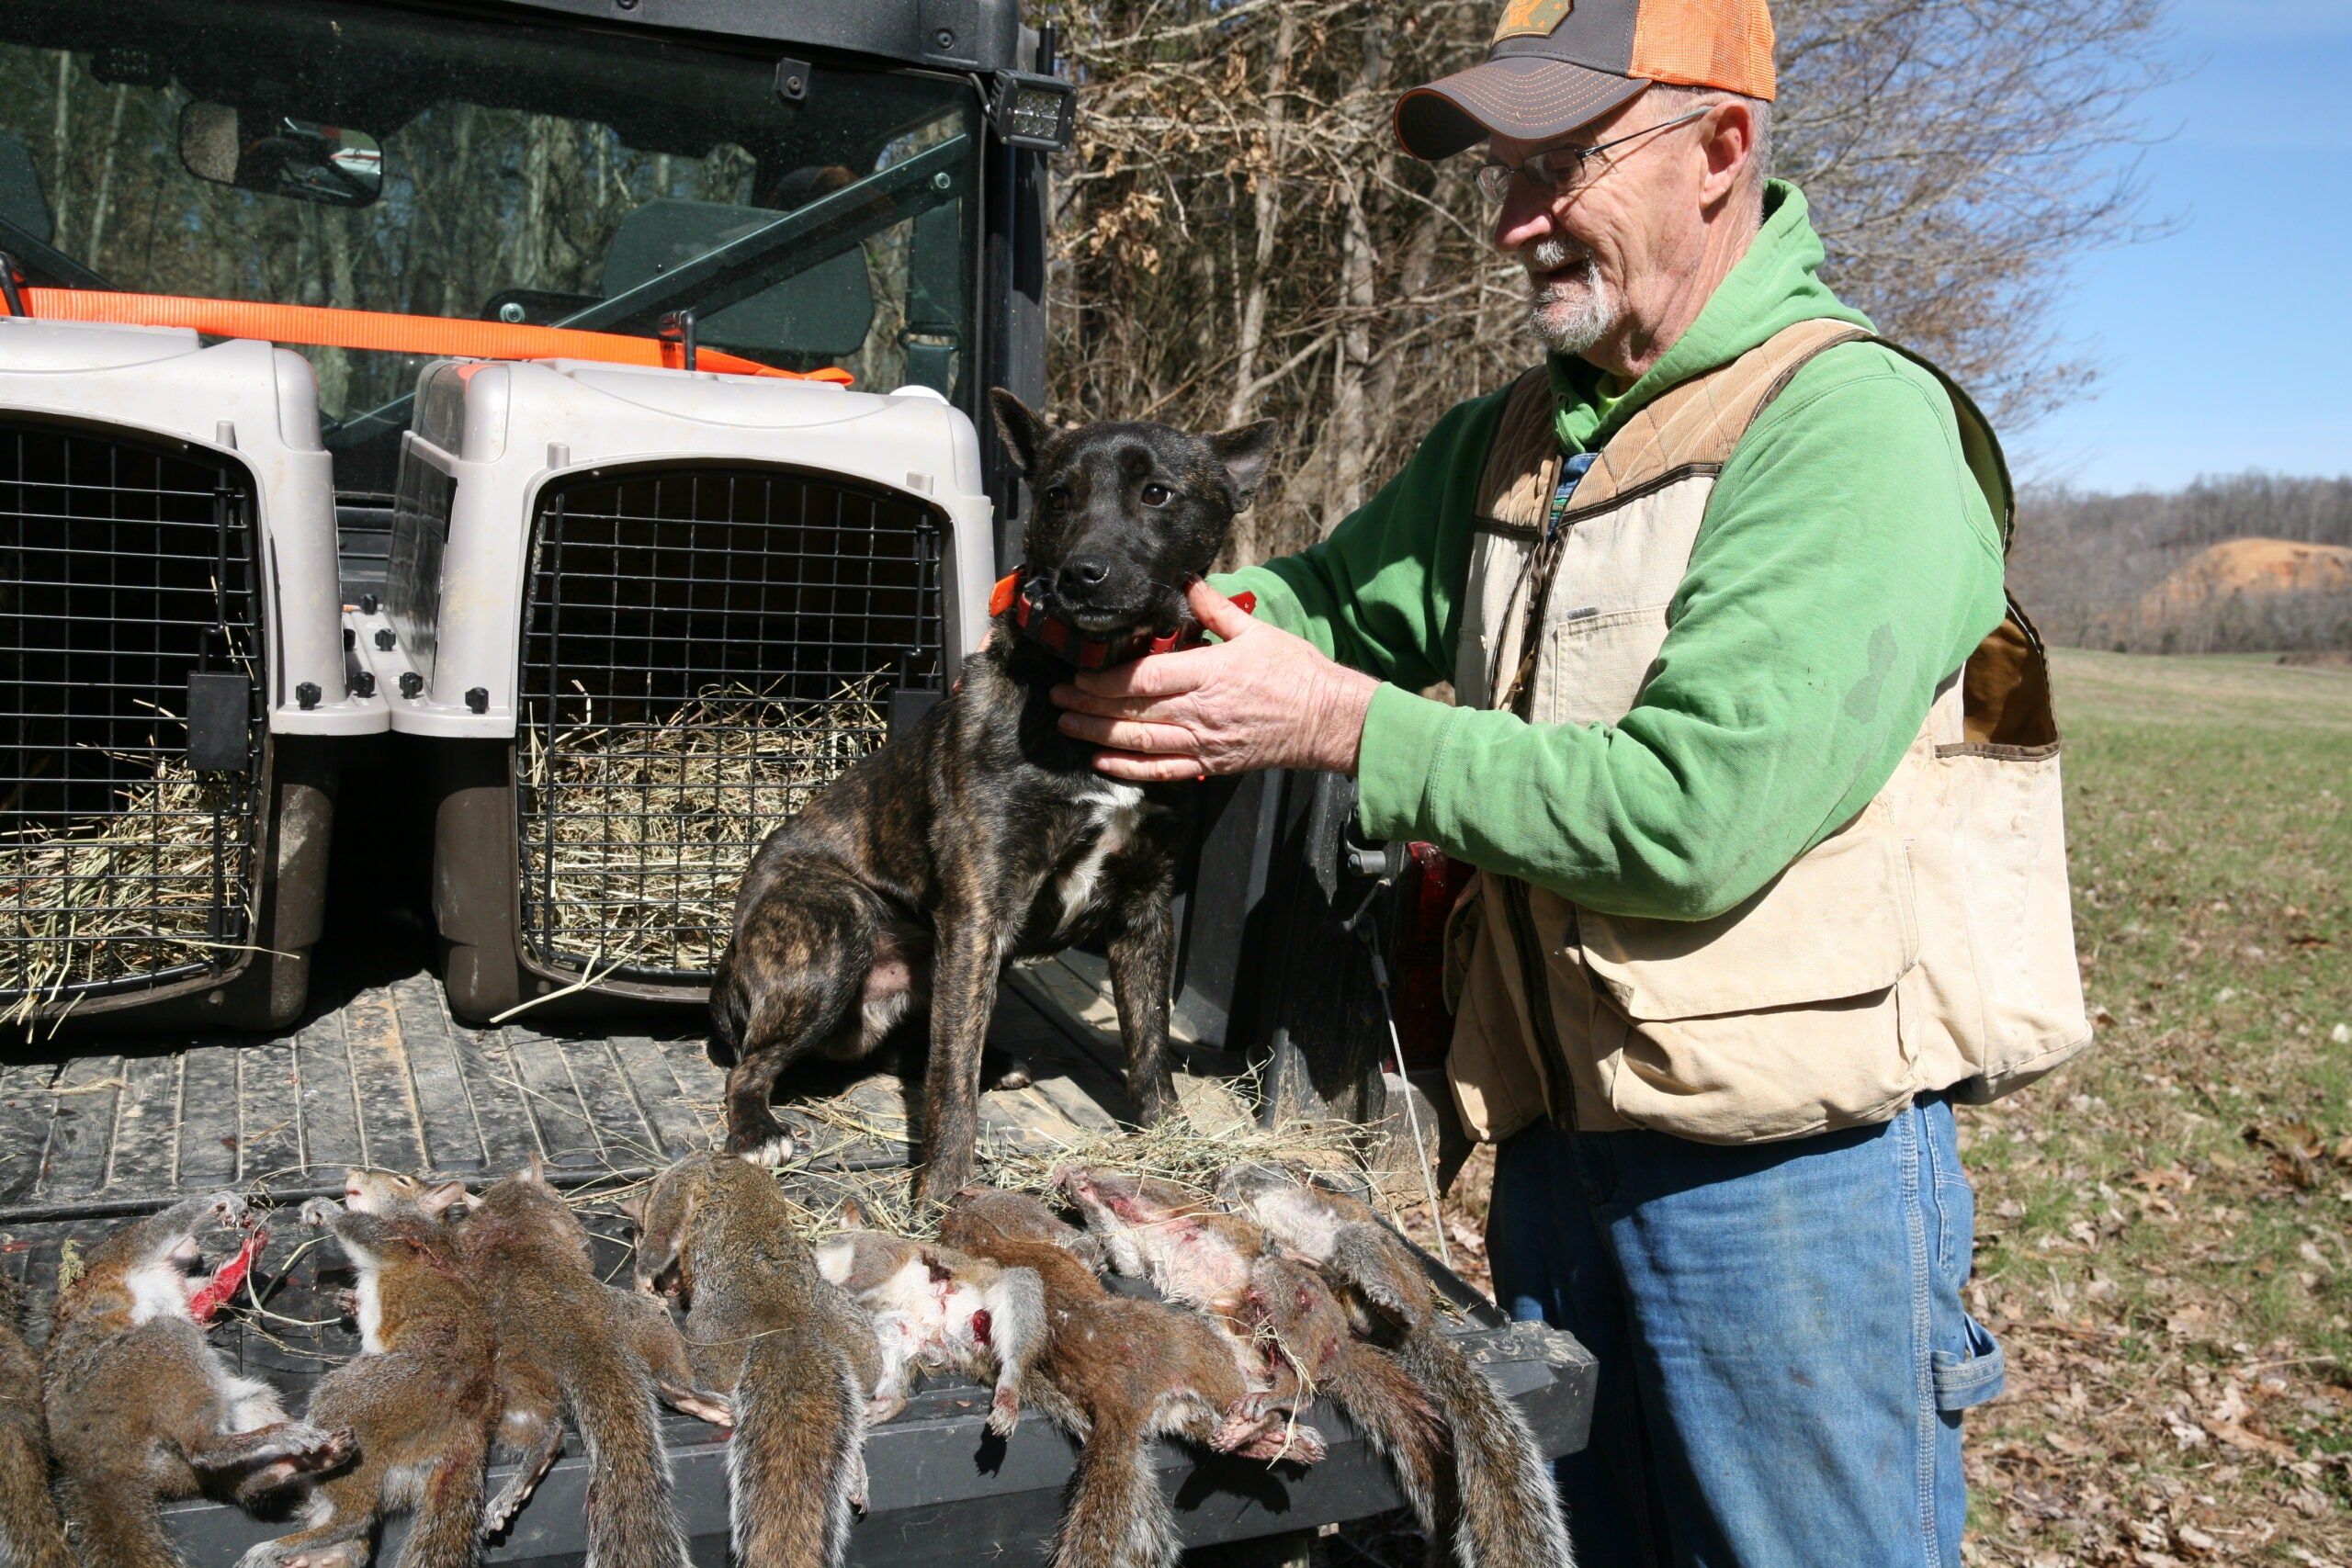 Hunter with dog and dead squirrels on the back of truck.